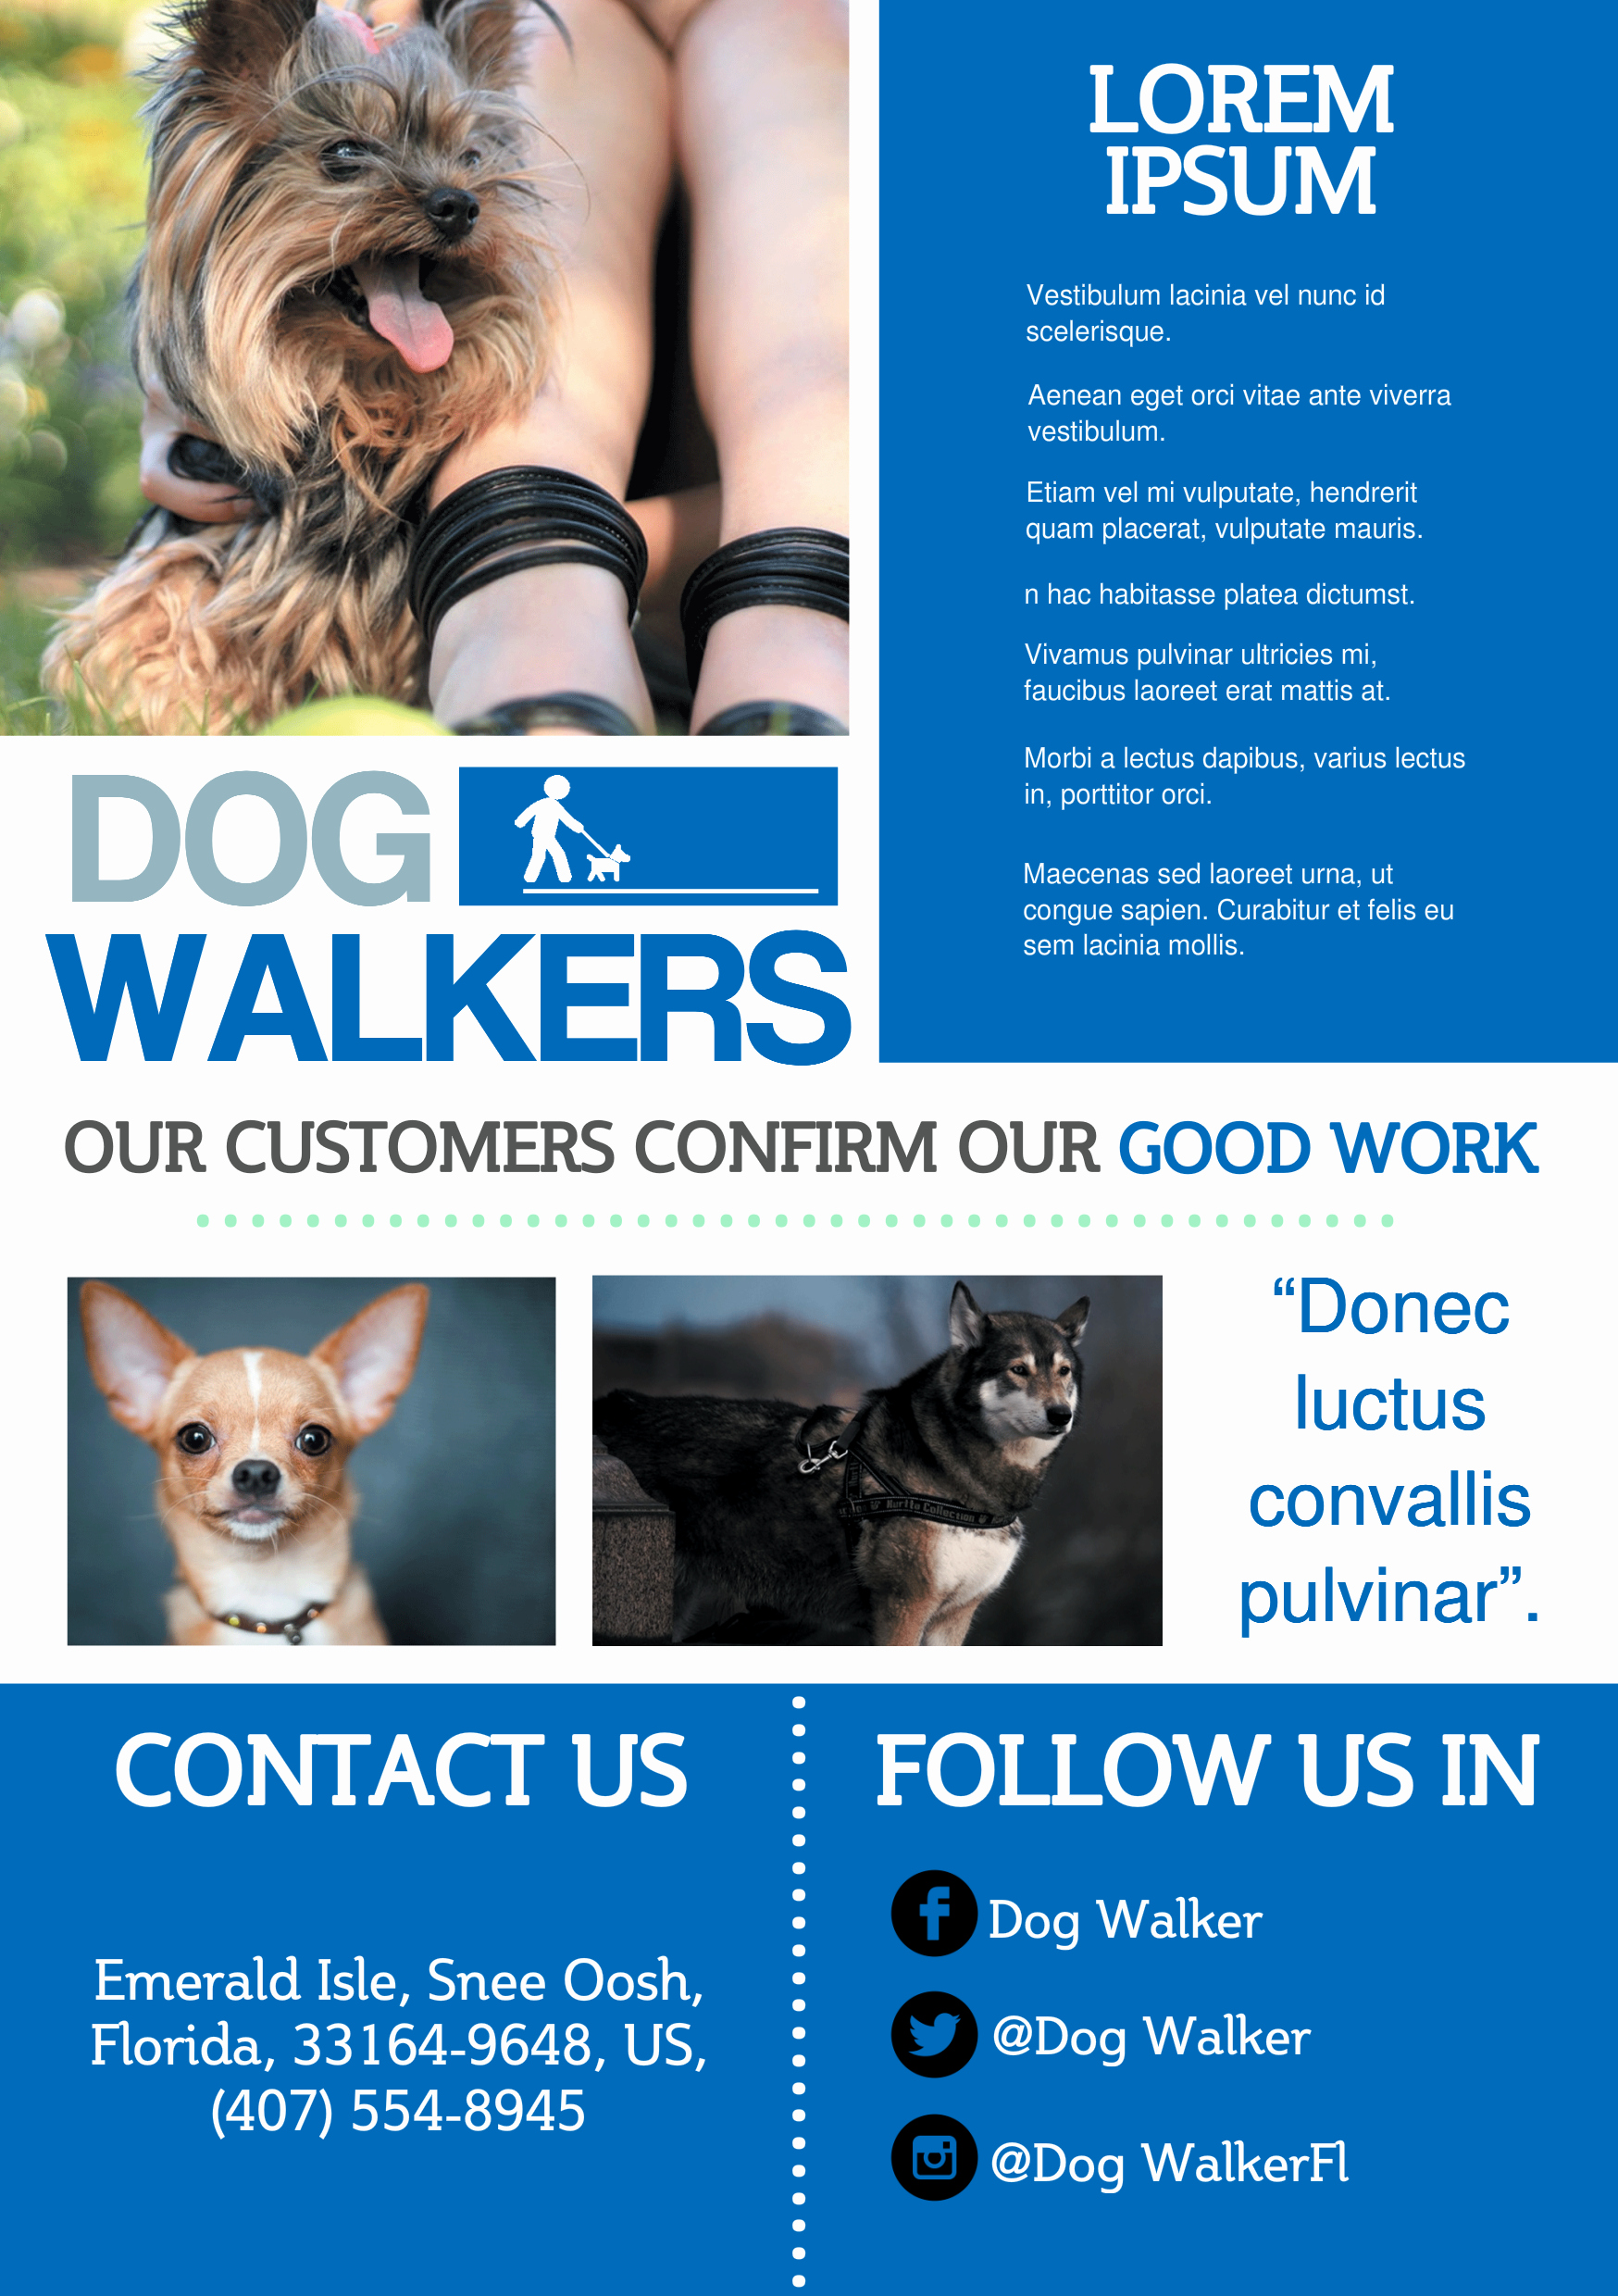 Dog Walker A Promotional Flyer Http Premadevideos Fly